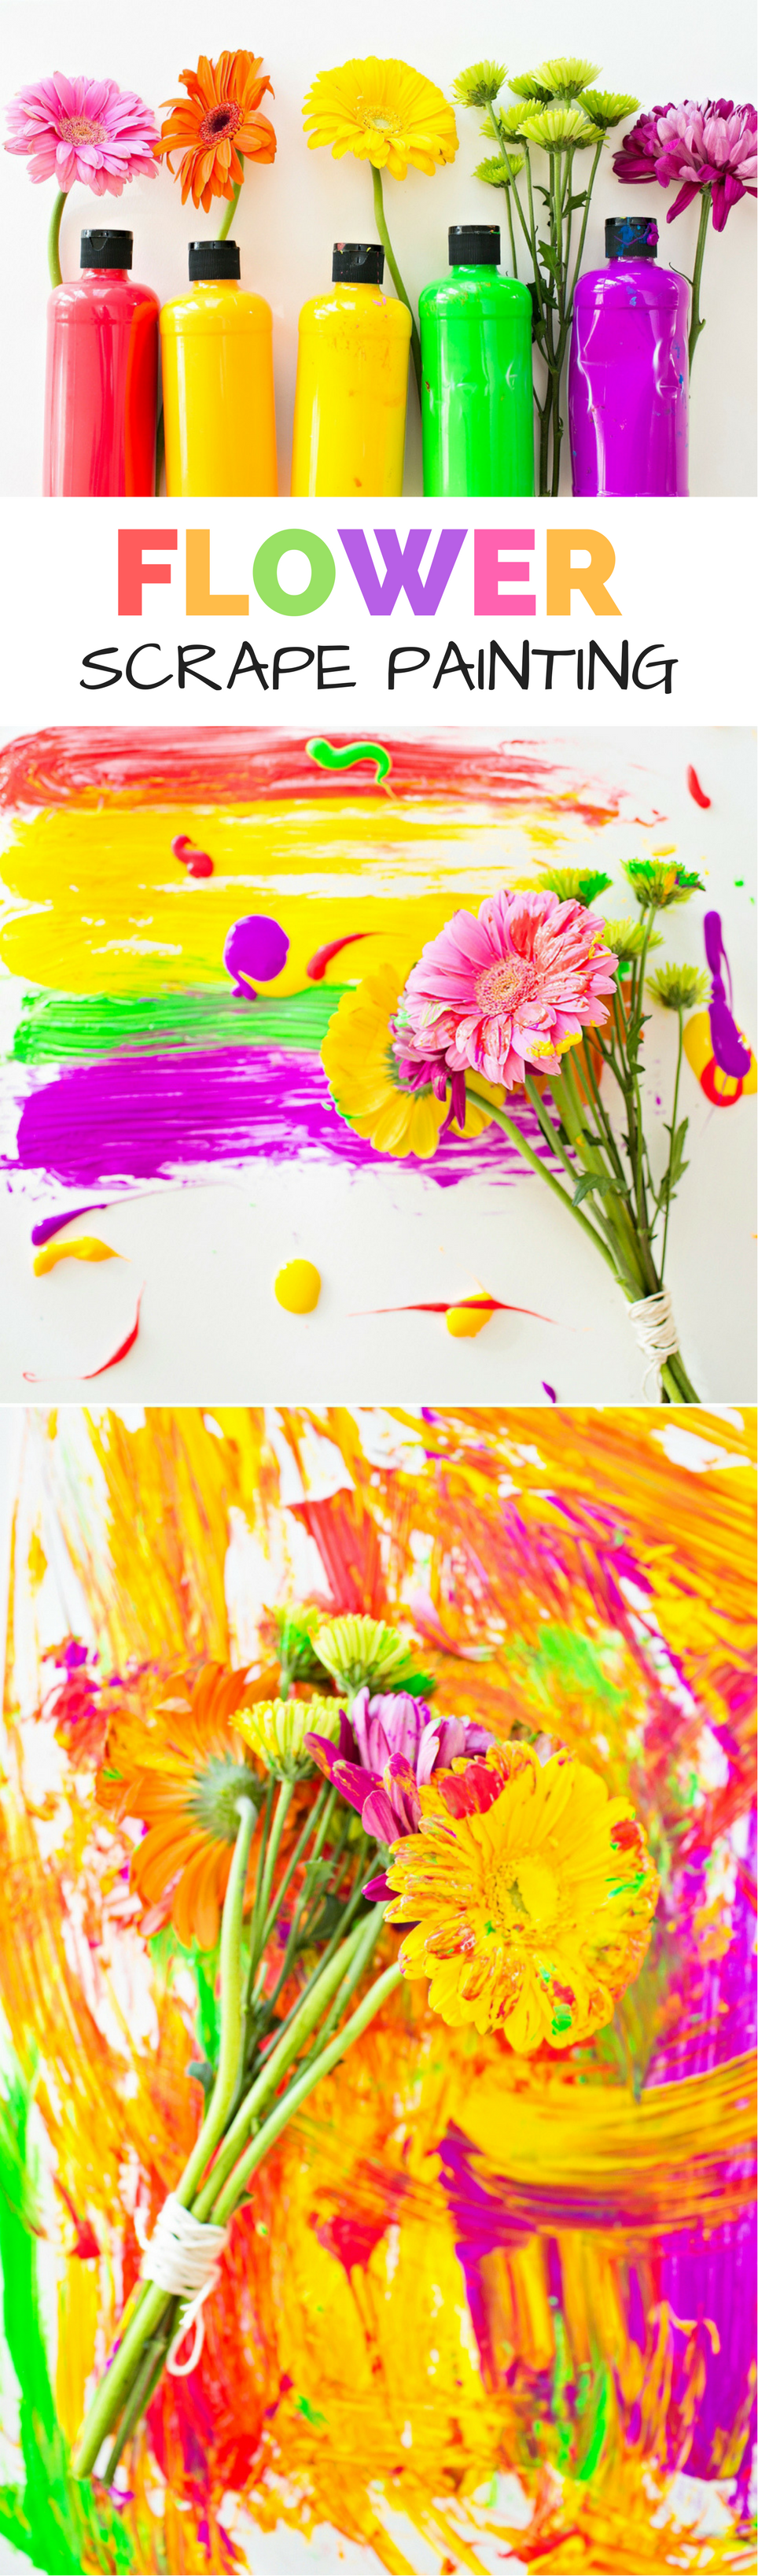 FLOWER SCRAPE PAINTING WITH KIDS   Art for Kids and Teens   Spring